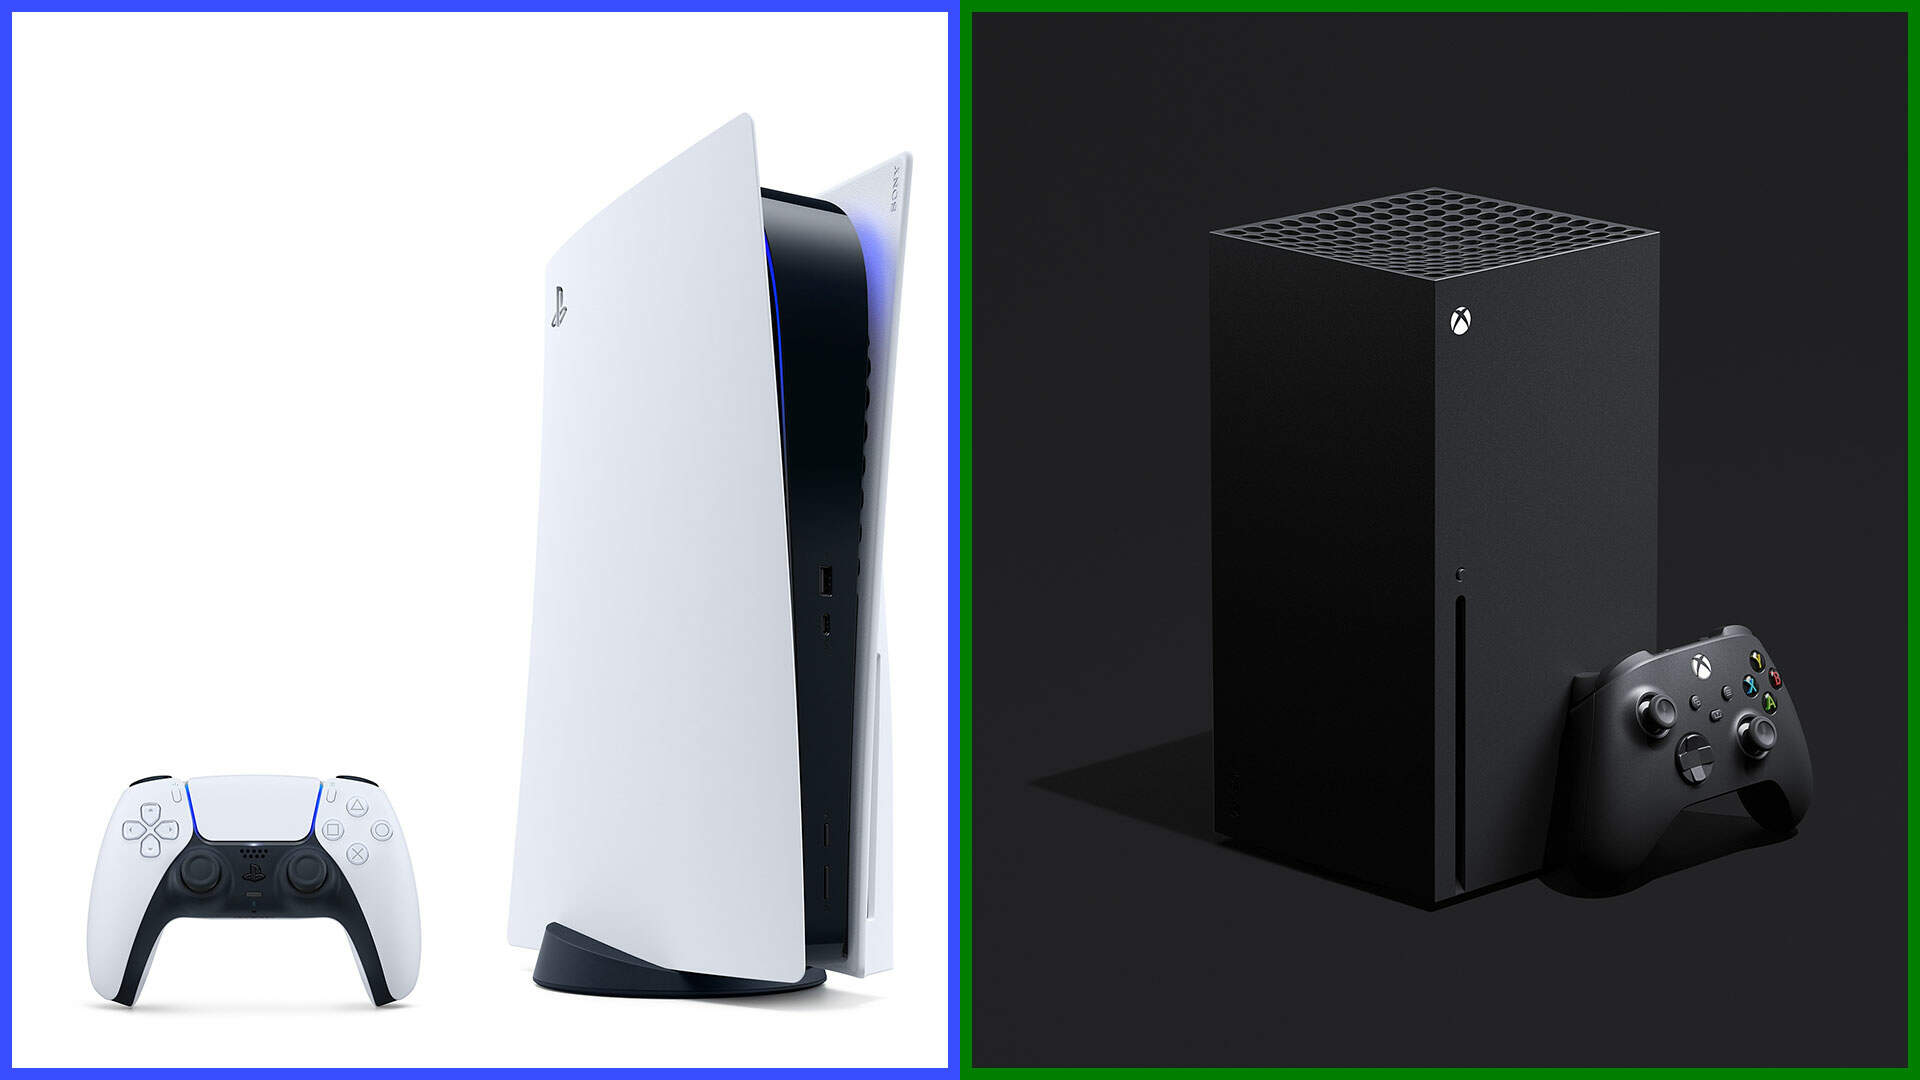 PS5 and Xbox Series X/S Reviews Are Out, So What Are You Getting?